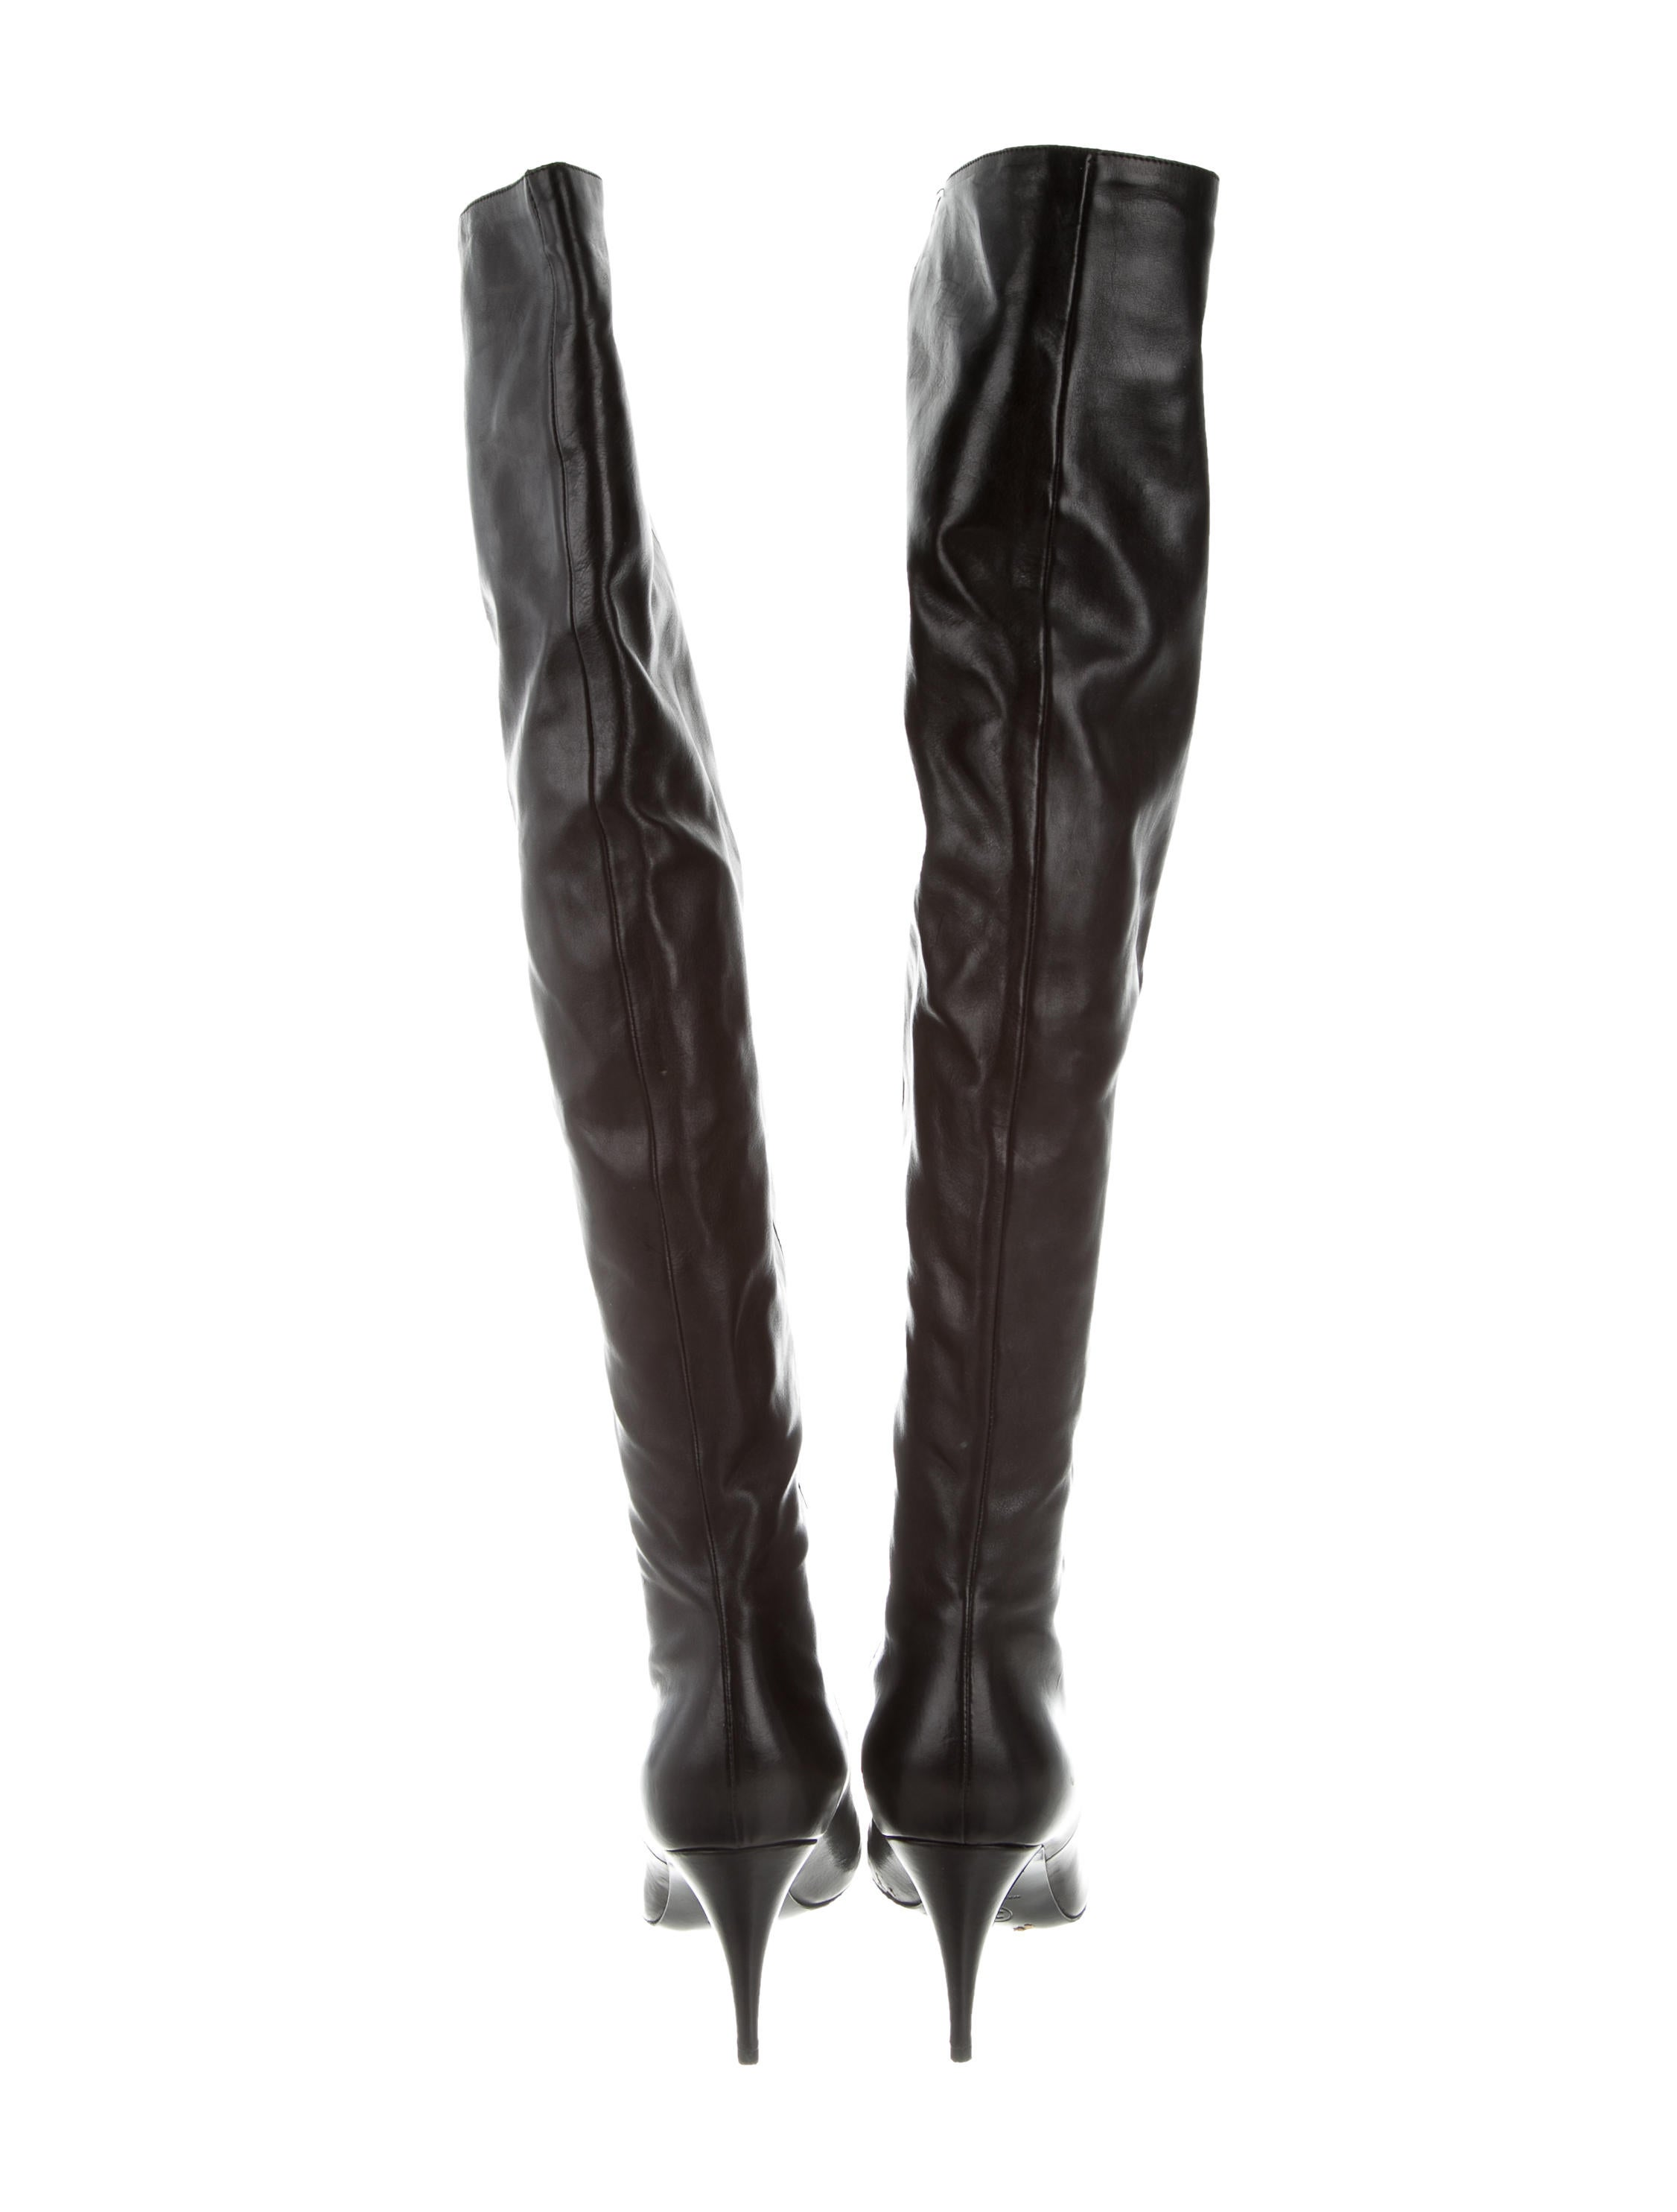 7f27d4d0bc4 Chanel Over-The-Knee Cap-Toe Boots - Shoes - CHA198775